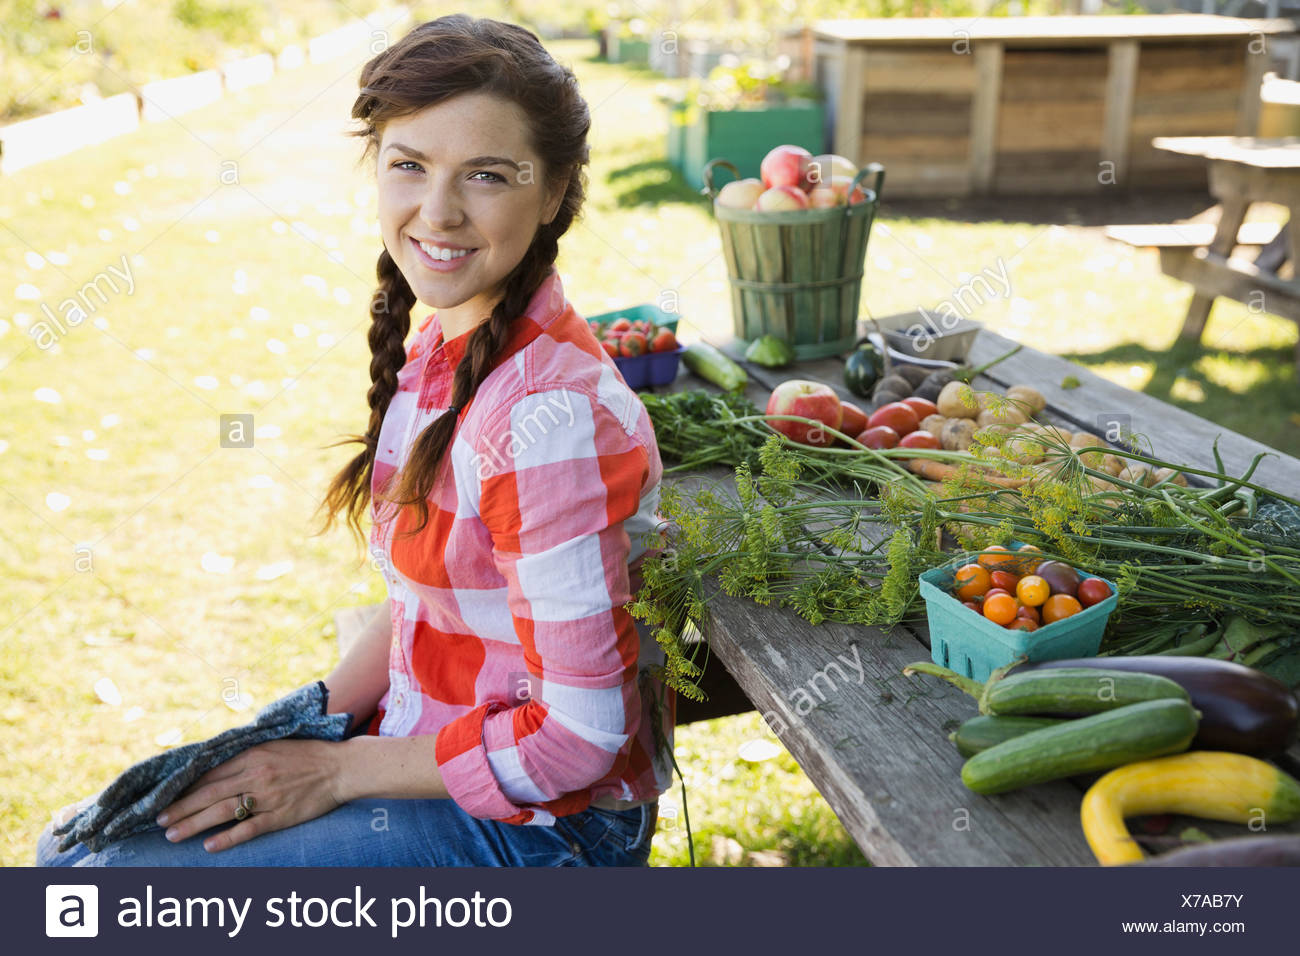 Woman sitting next to harvested fruit and vegetables - Stock Image